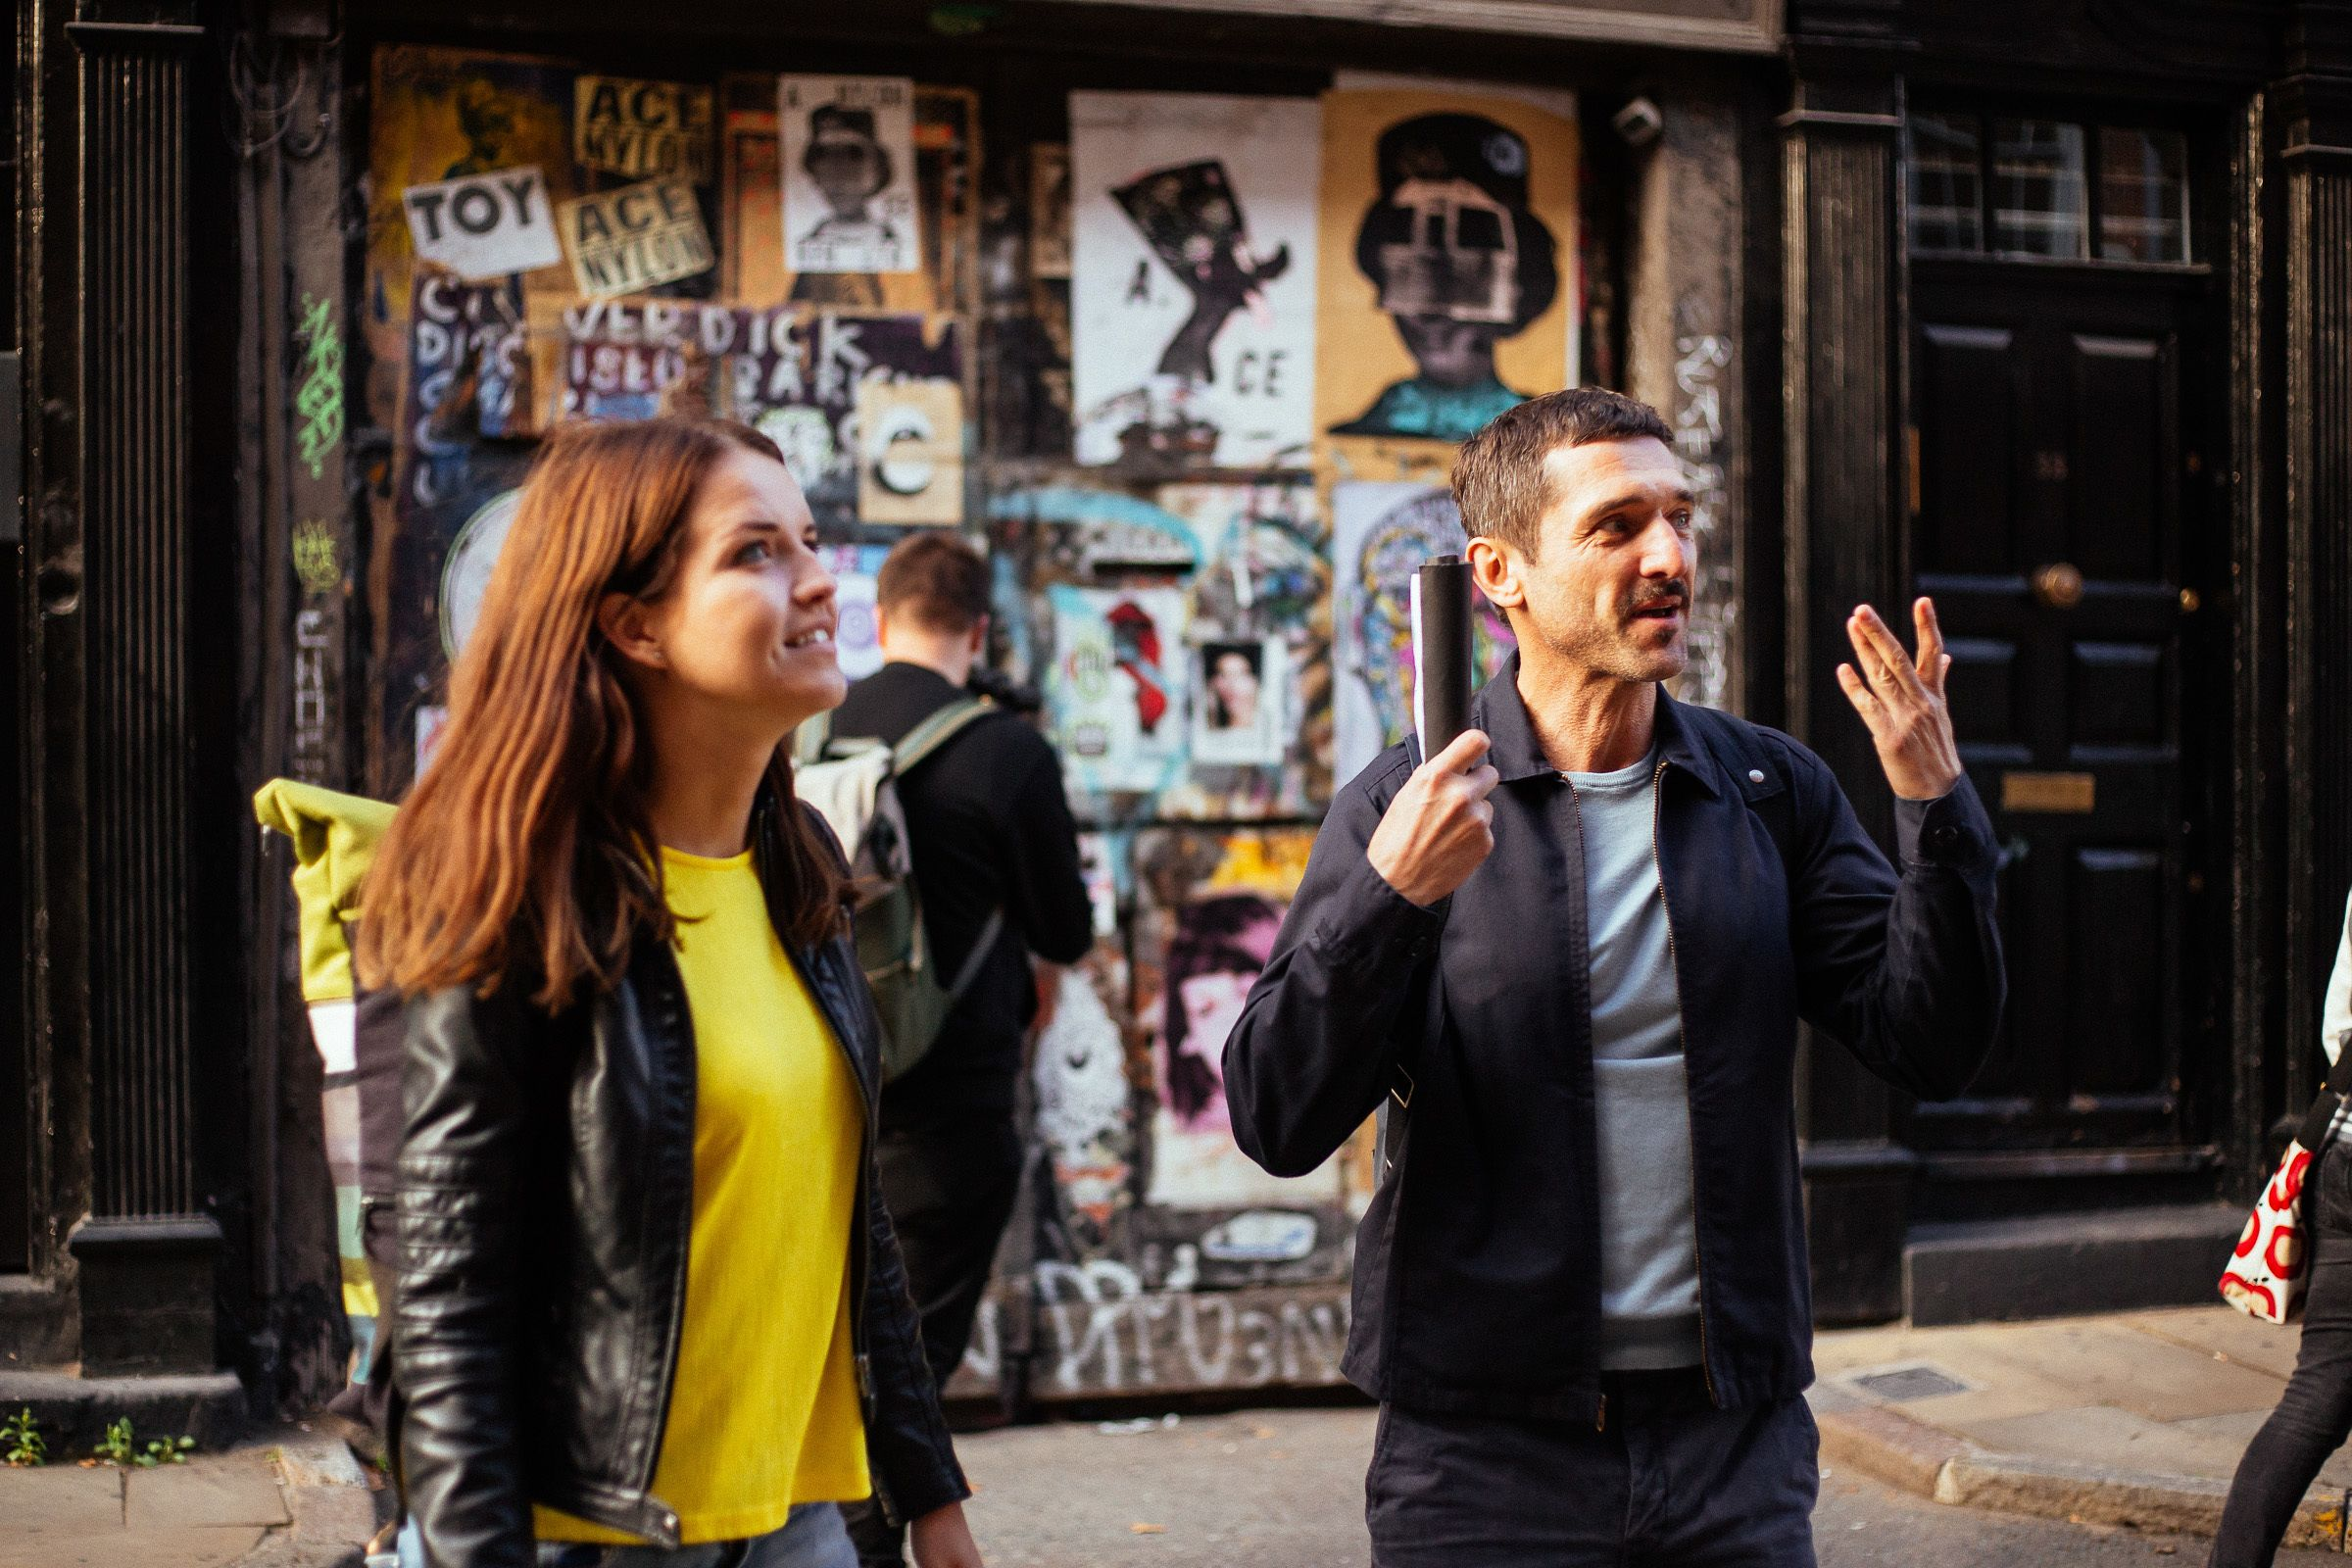 Tourists in the Urban Jungle of London